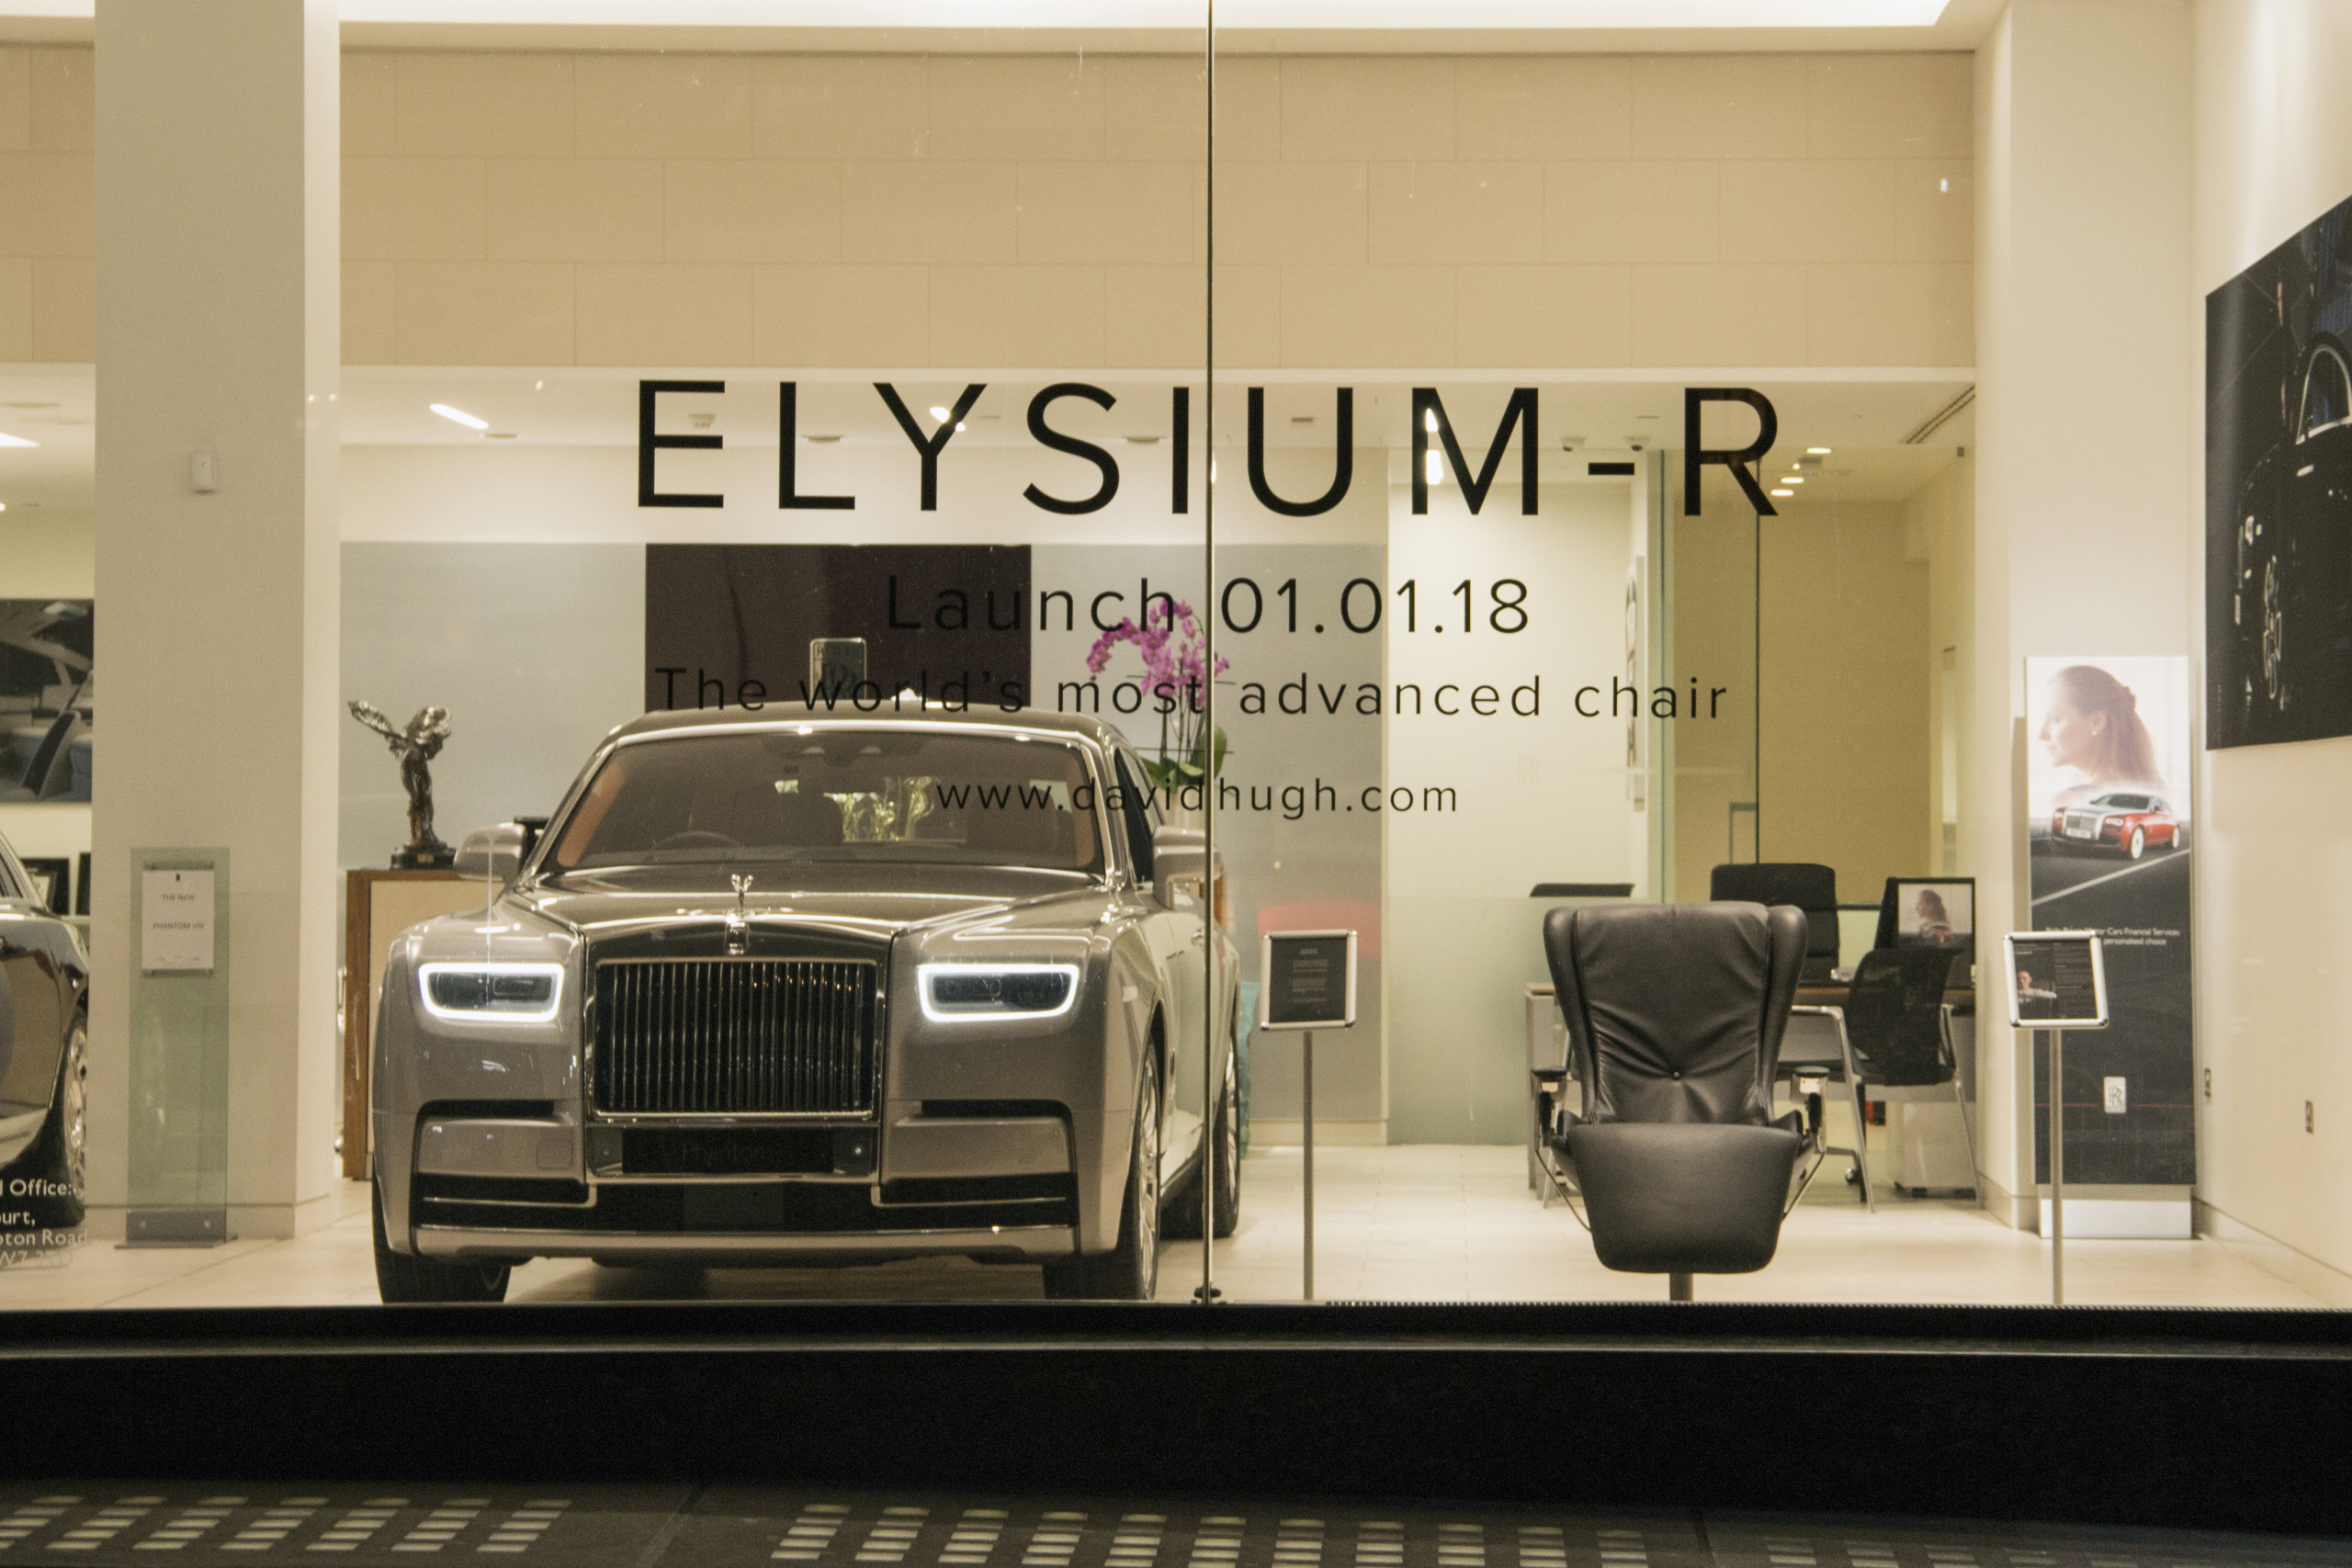 DavidHugh Elysium-R Rolls-Royce showroom